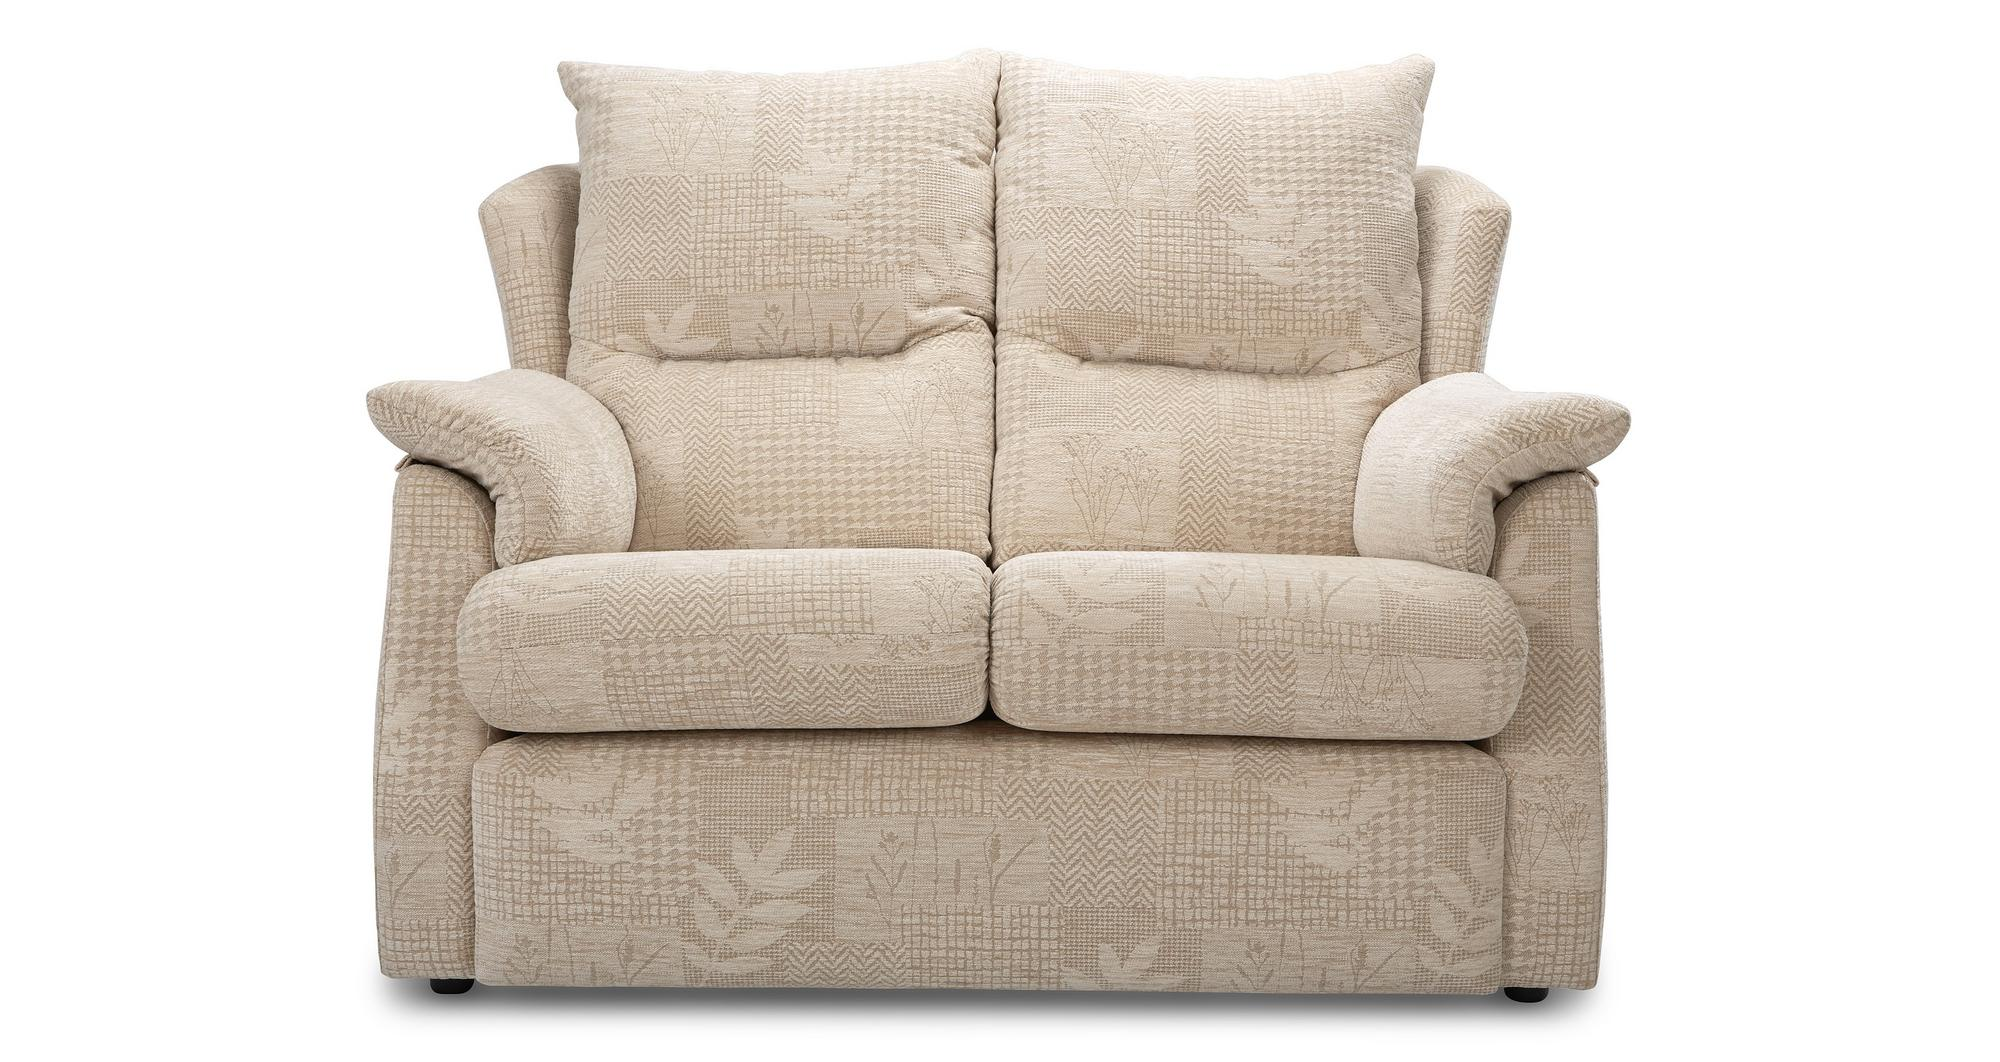 dfs stow cream fabric small 2 seater sofa and manual. Black Bedroom Furniture Sets. Home Design Ideas